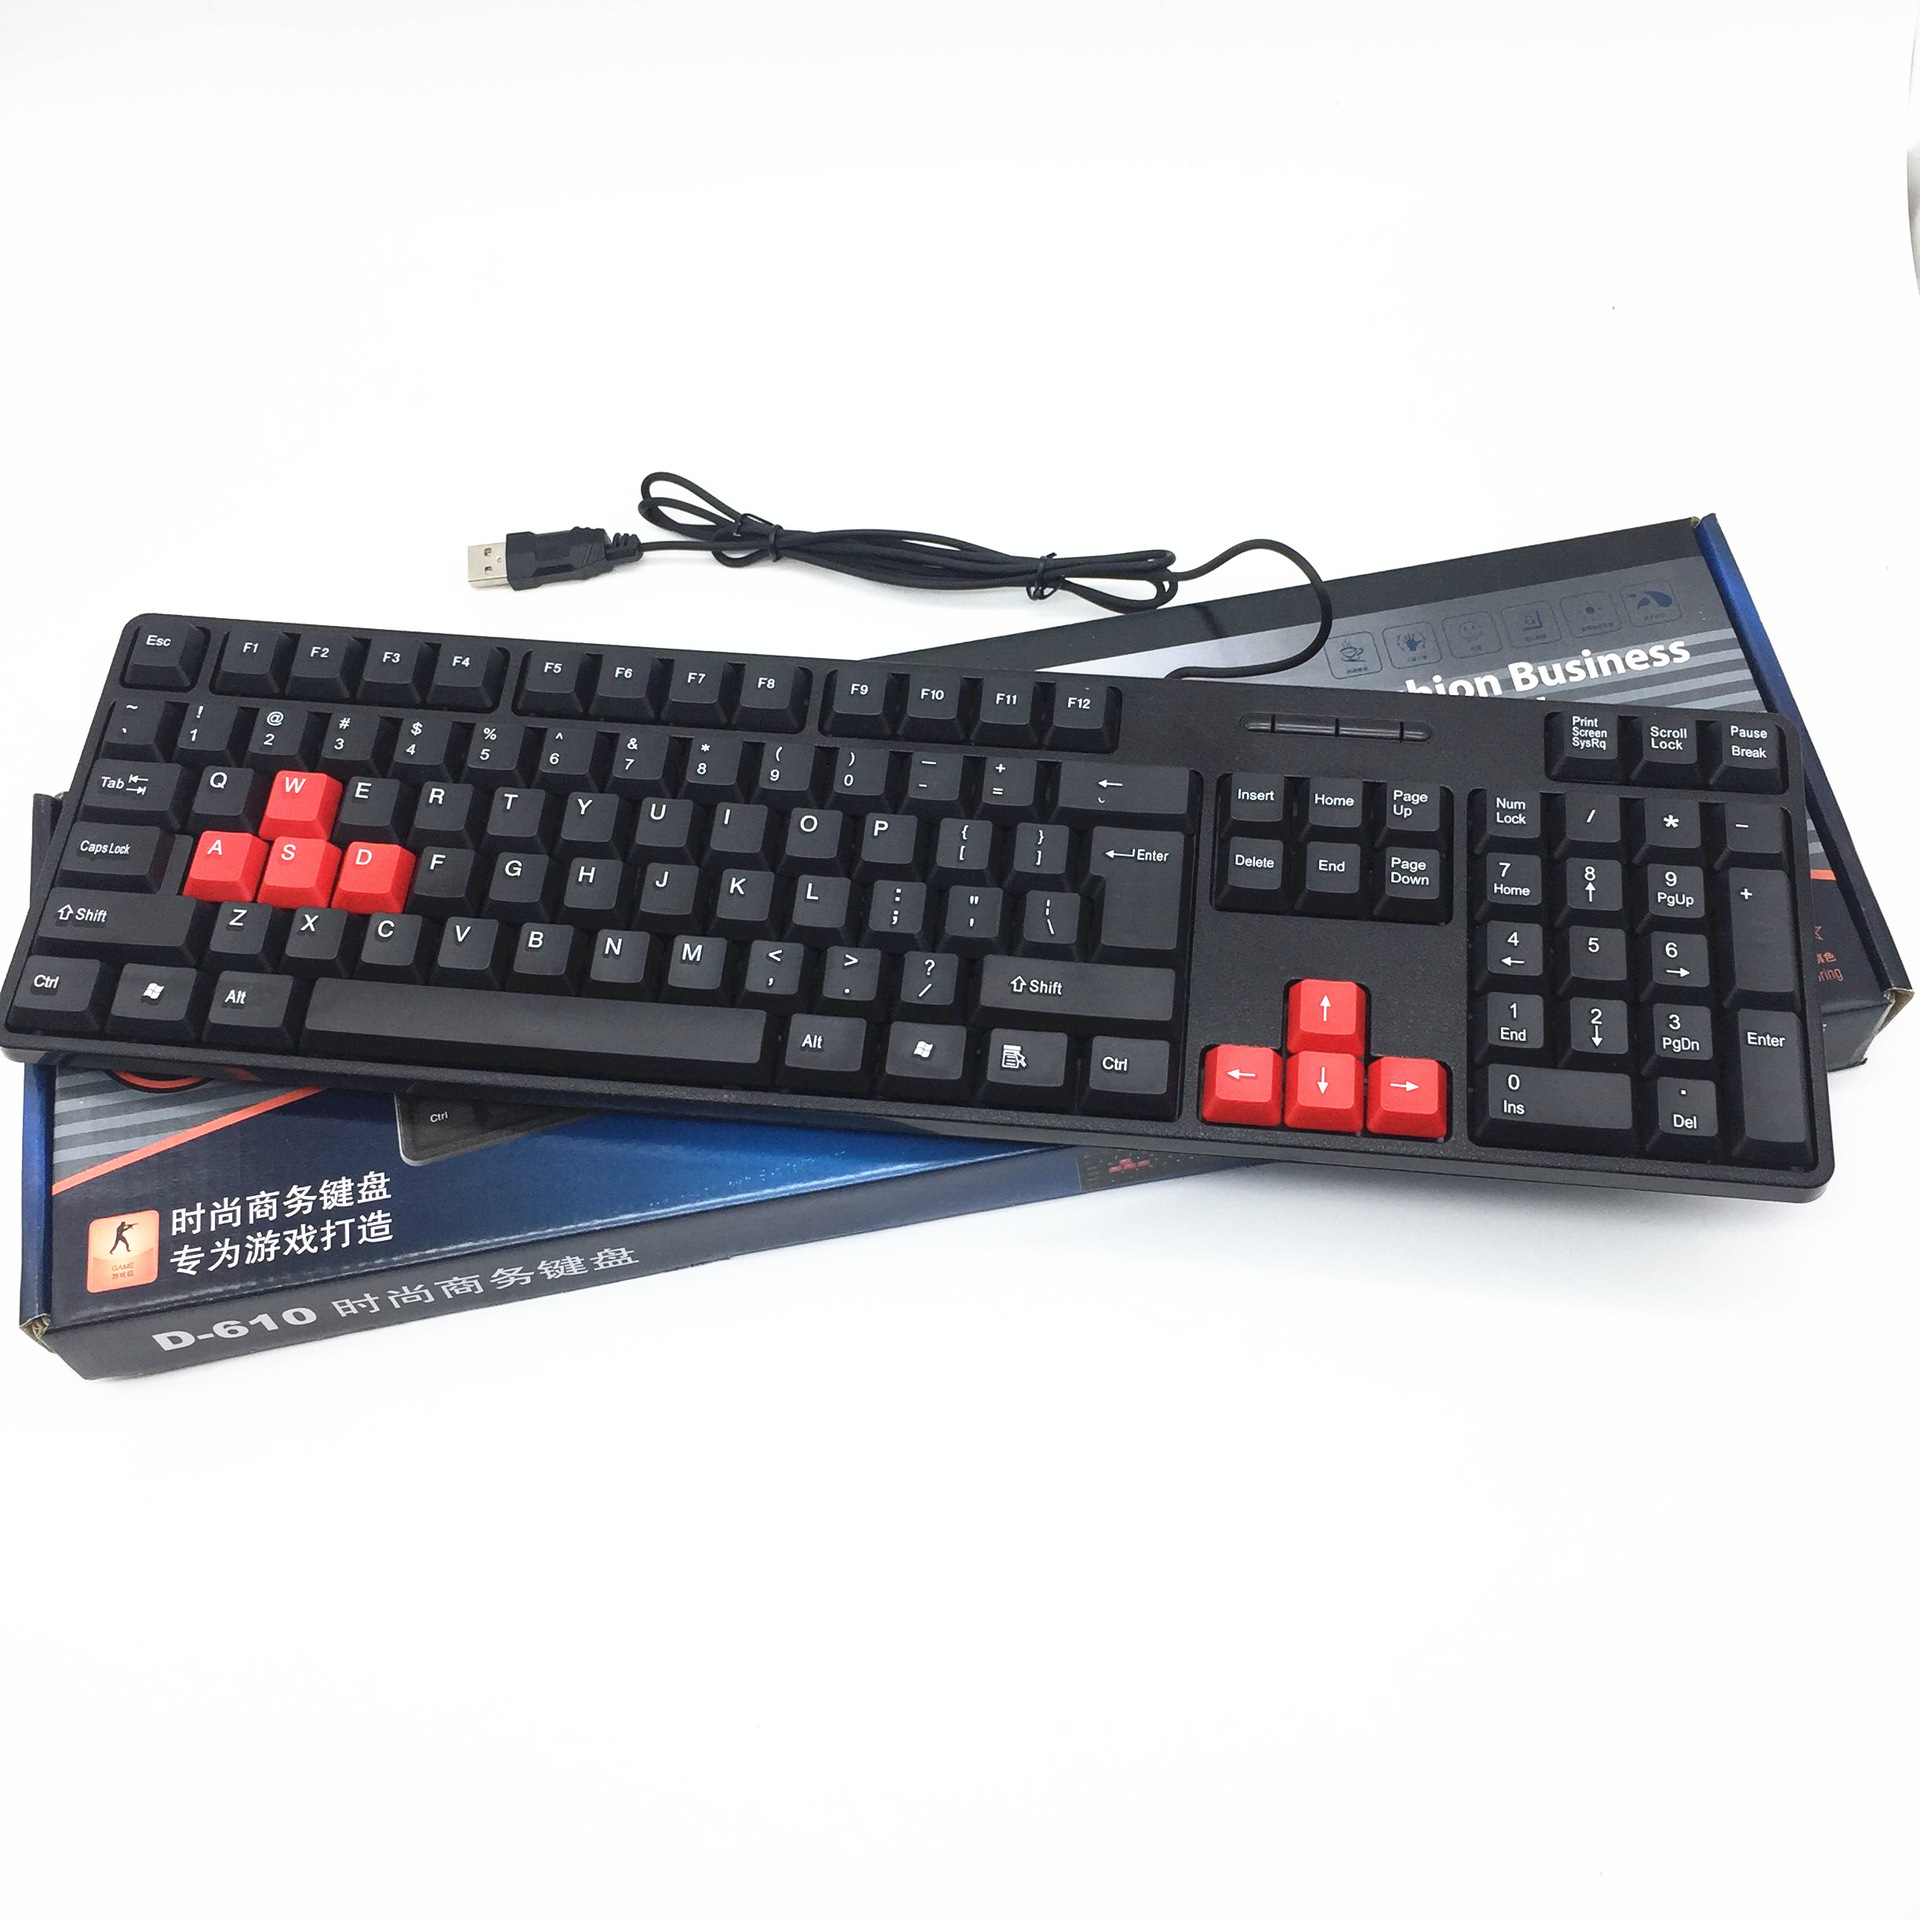 Waterproof Keyboard Computer Wired Keyboard Internet Cafes Gaming Keyboard Bluetooth Keyboard Computer Accessories Wholesale